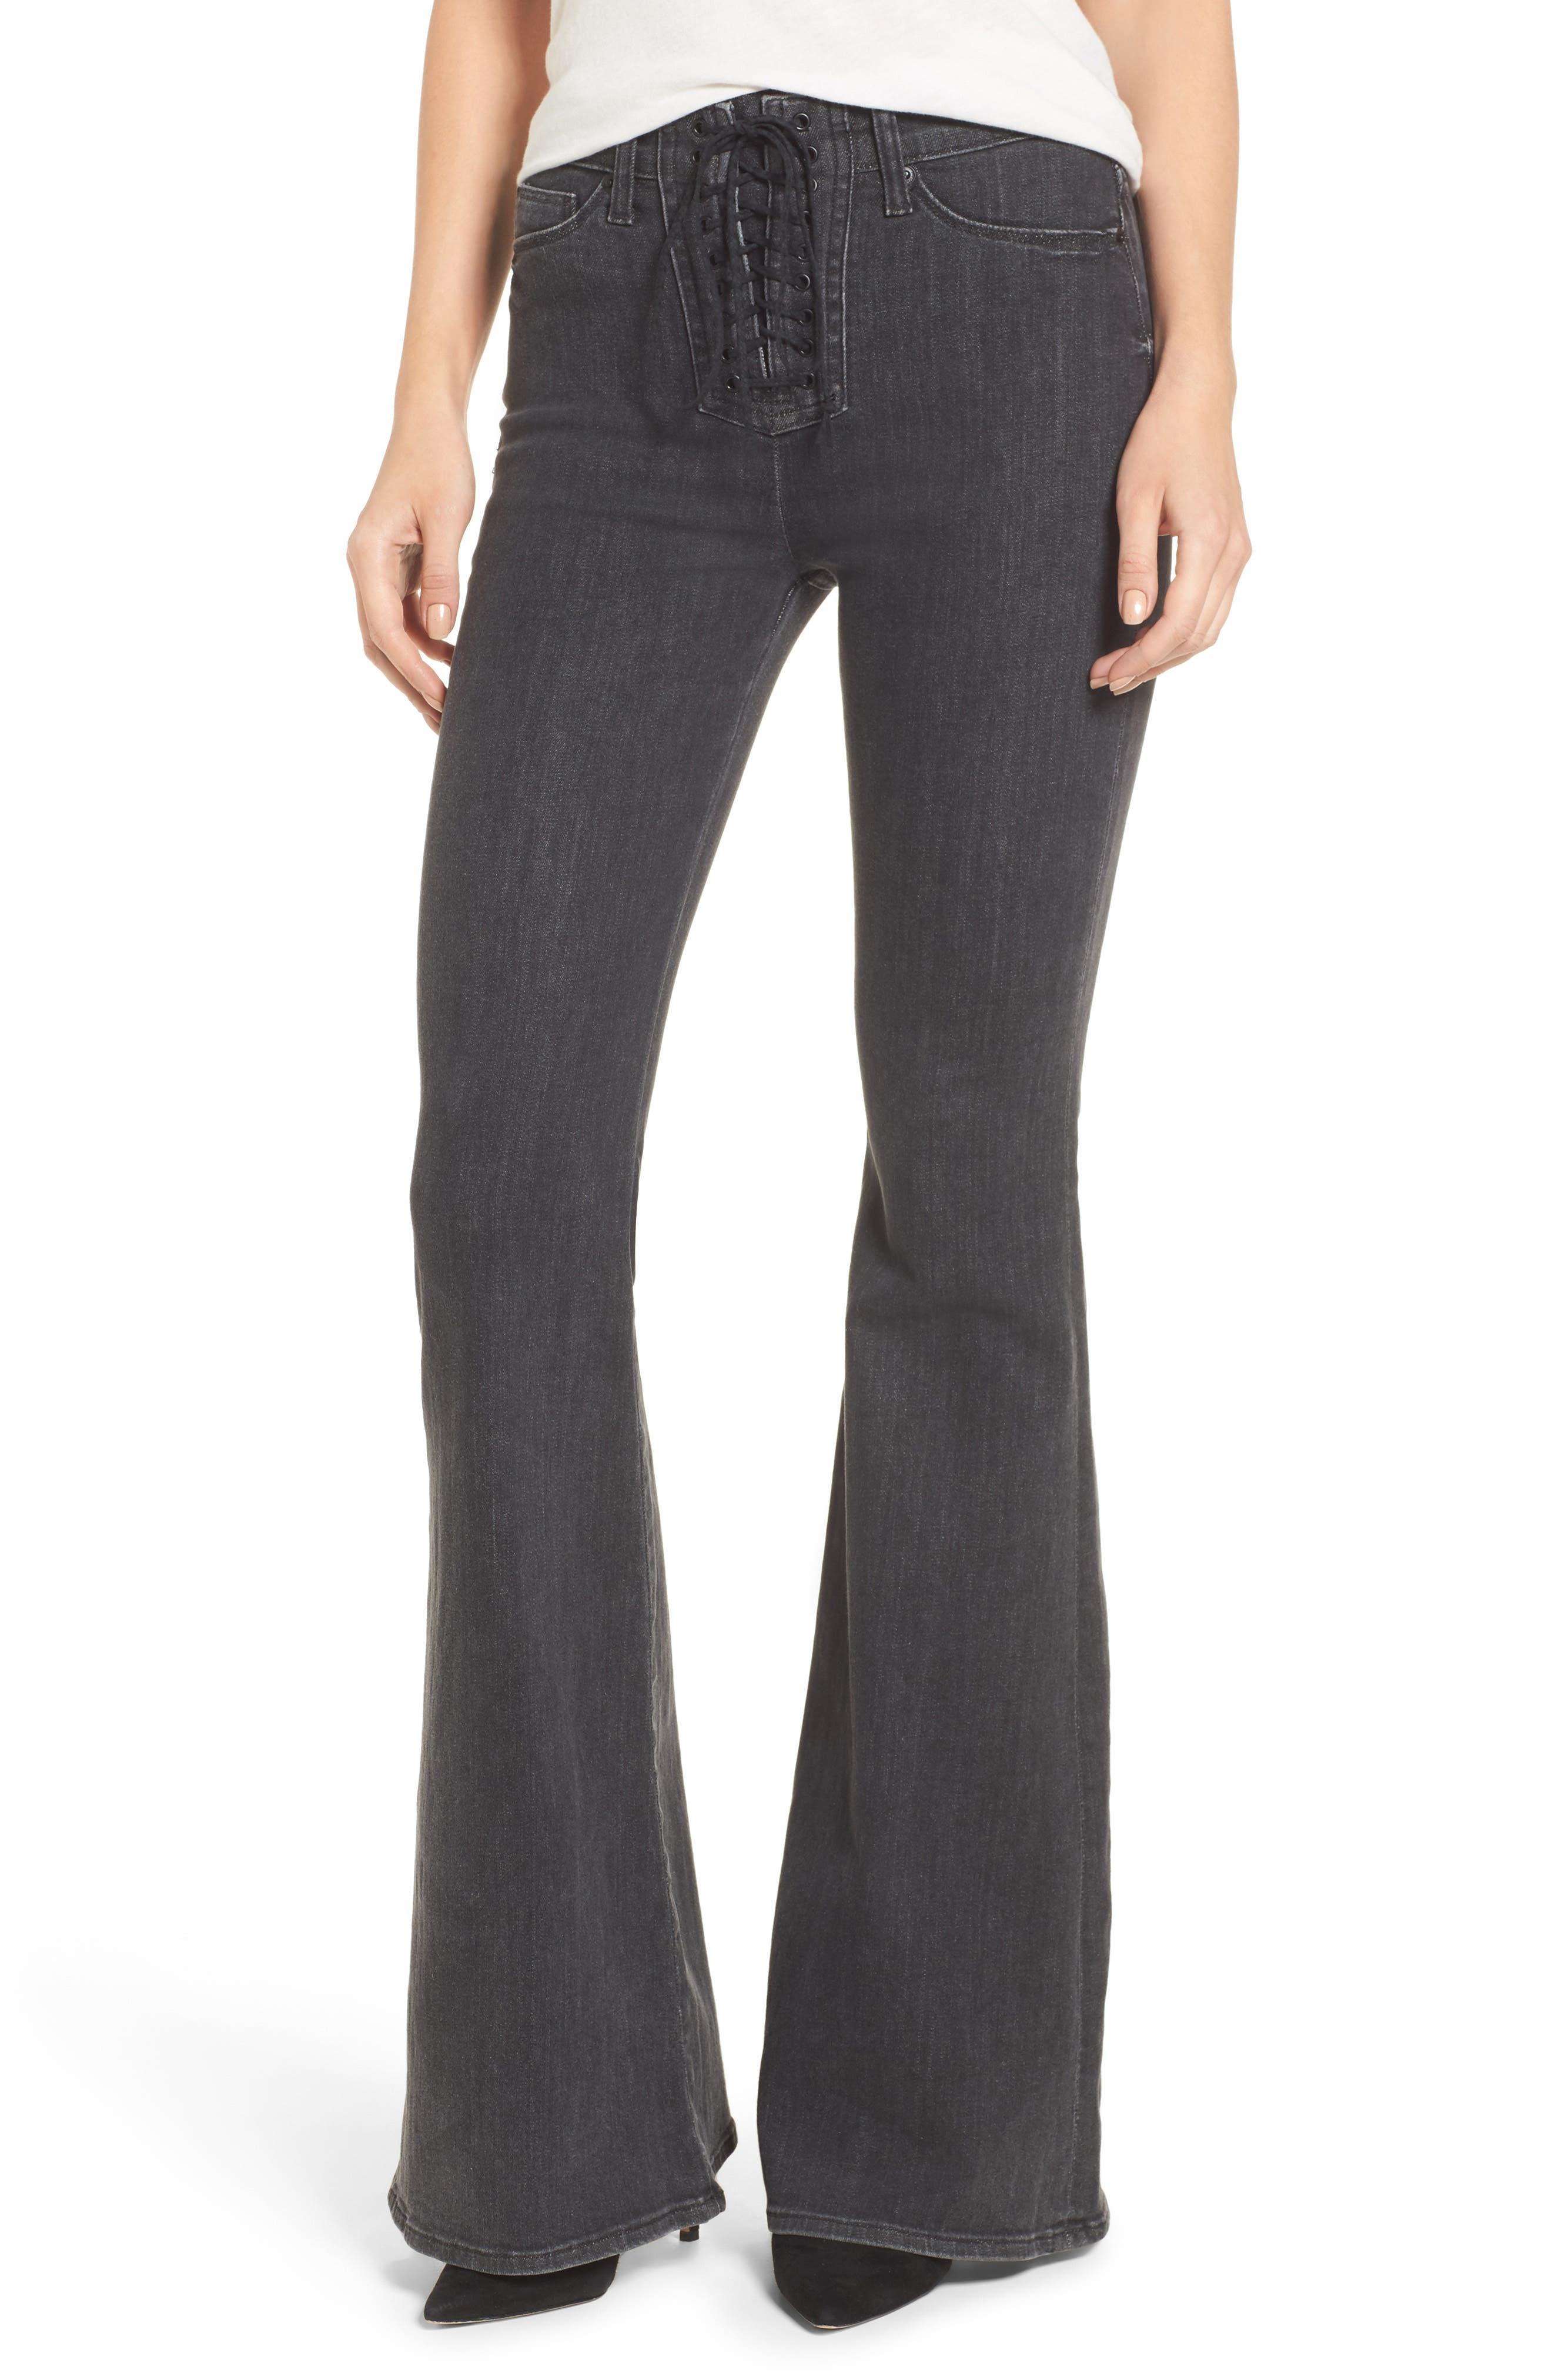 Alternate Image 1 Selected - Hudson Jeans Bullocks High Waist Lace-Up Flare Jeans (Disarm)